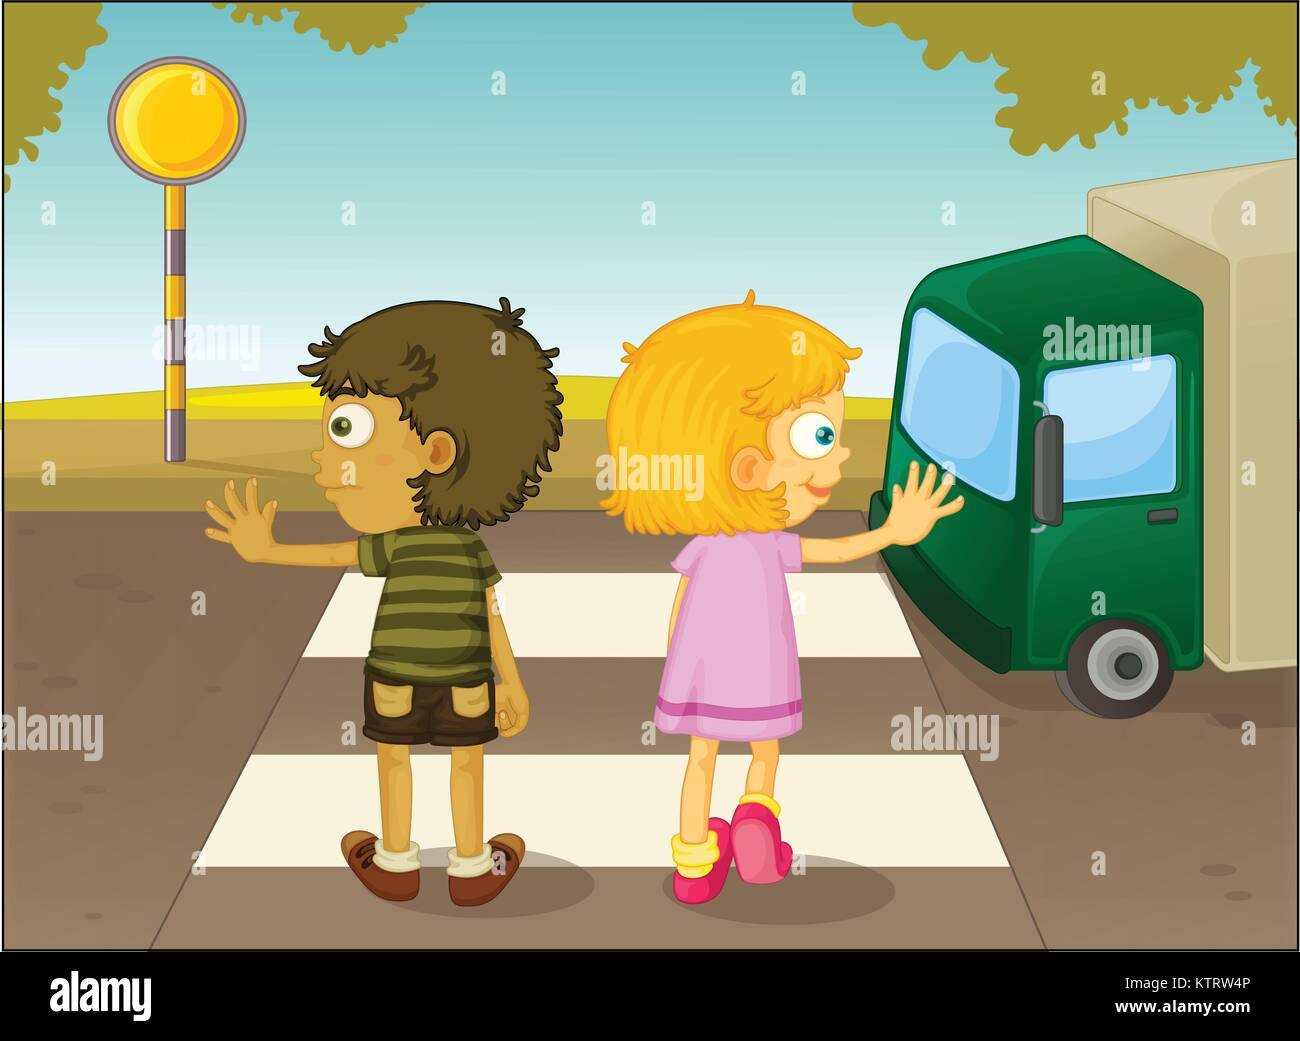 Illustration of boy and girl crossing the street - Stock Vector